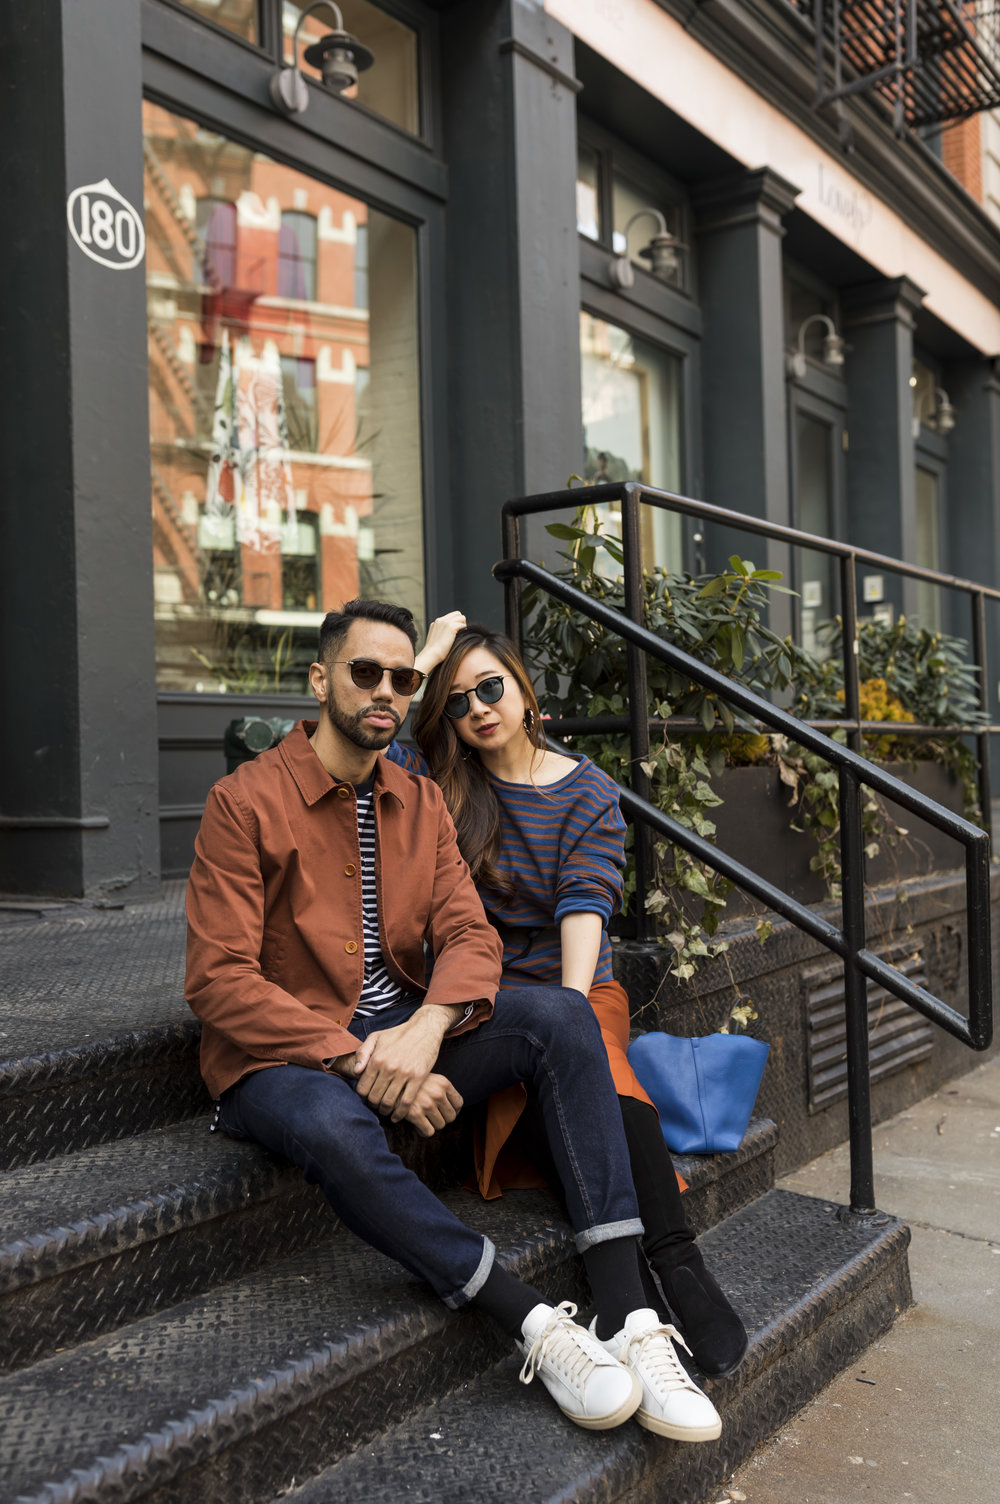 Victor and I outside 180 The Store. Photos by Ashley Gallerani.